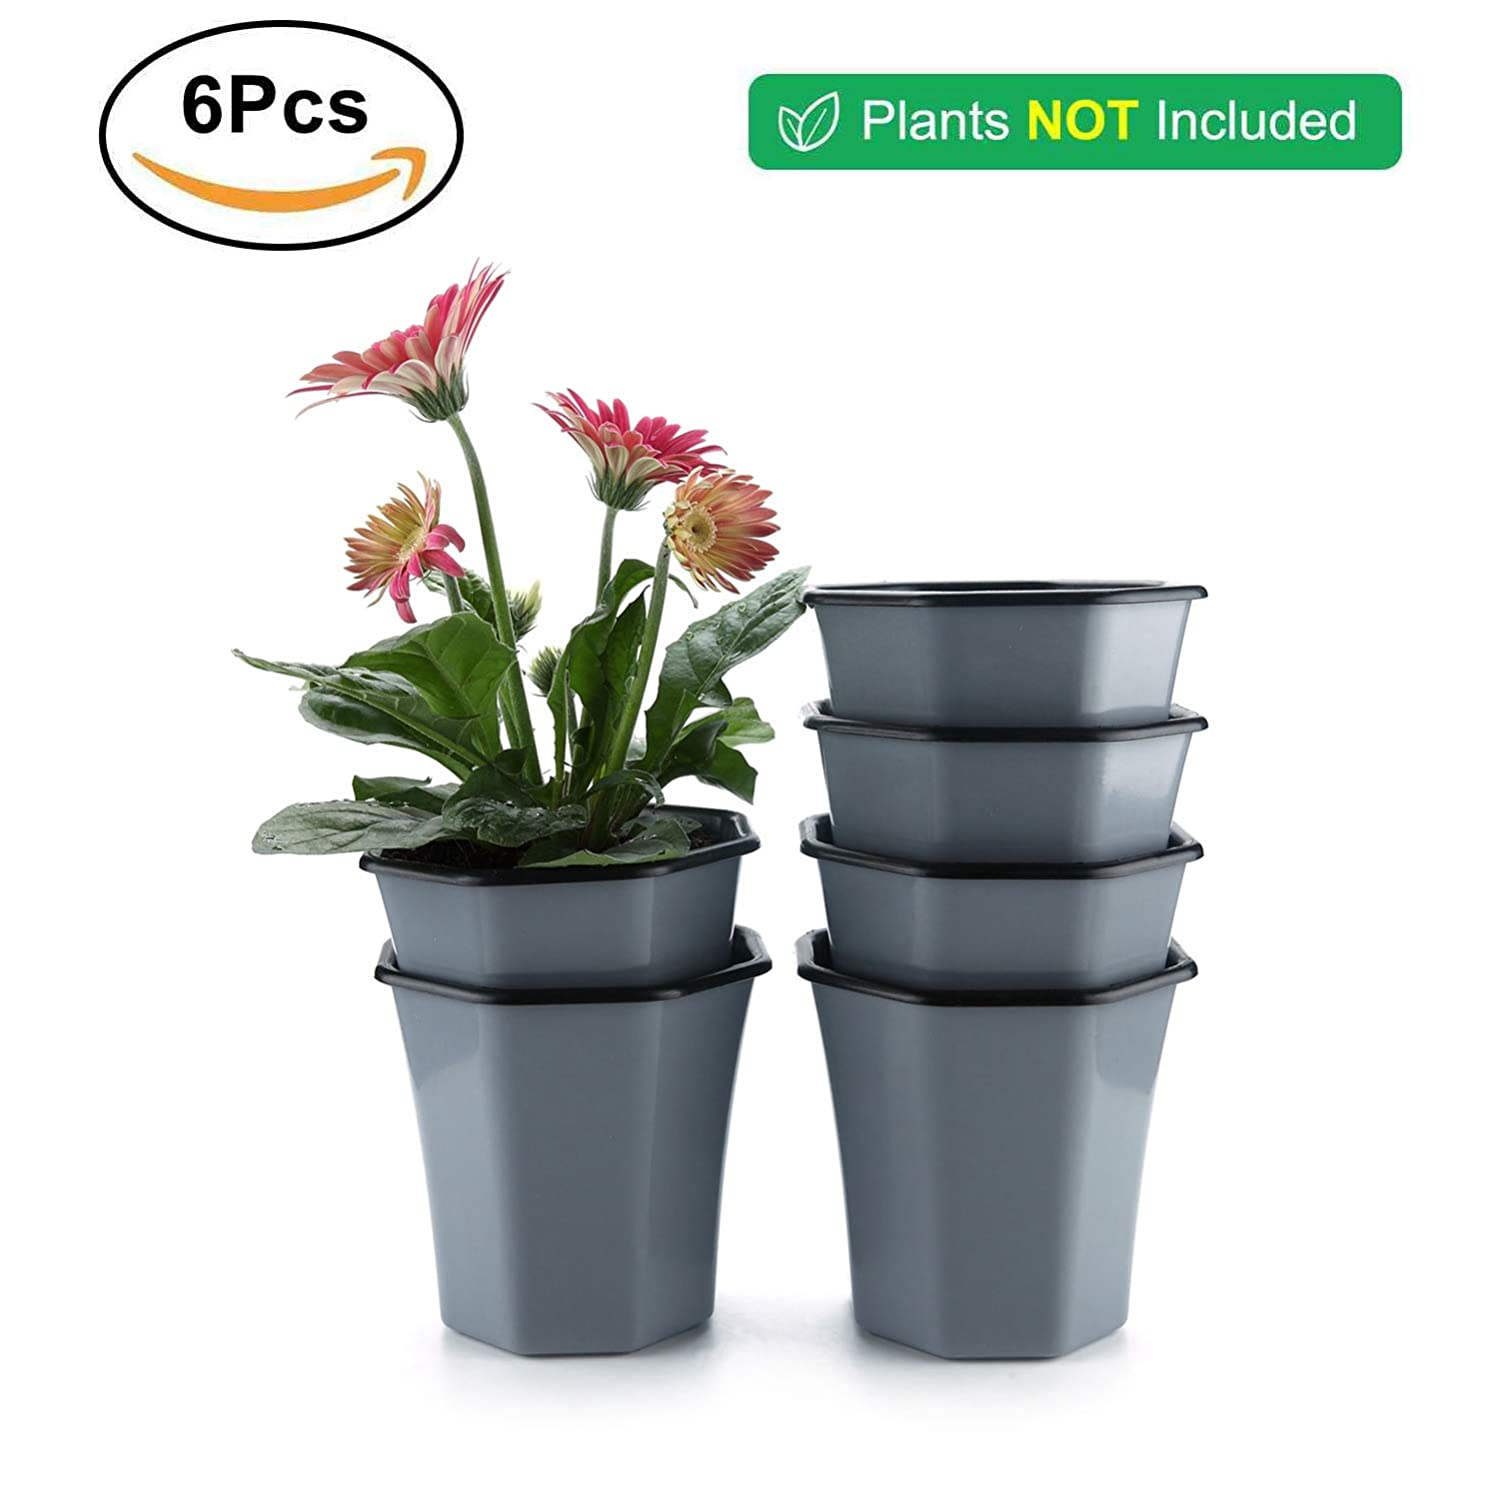 T4U Plastic Self Watering Planter Pot 5 Red Set of 2 Small Indoor Geometric Nursery Seedling Flower Pot Container for Orchid Herb Aloe Succulent Cactus Home Office Windowsill Balcony Decor Gift